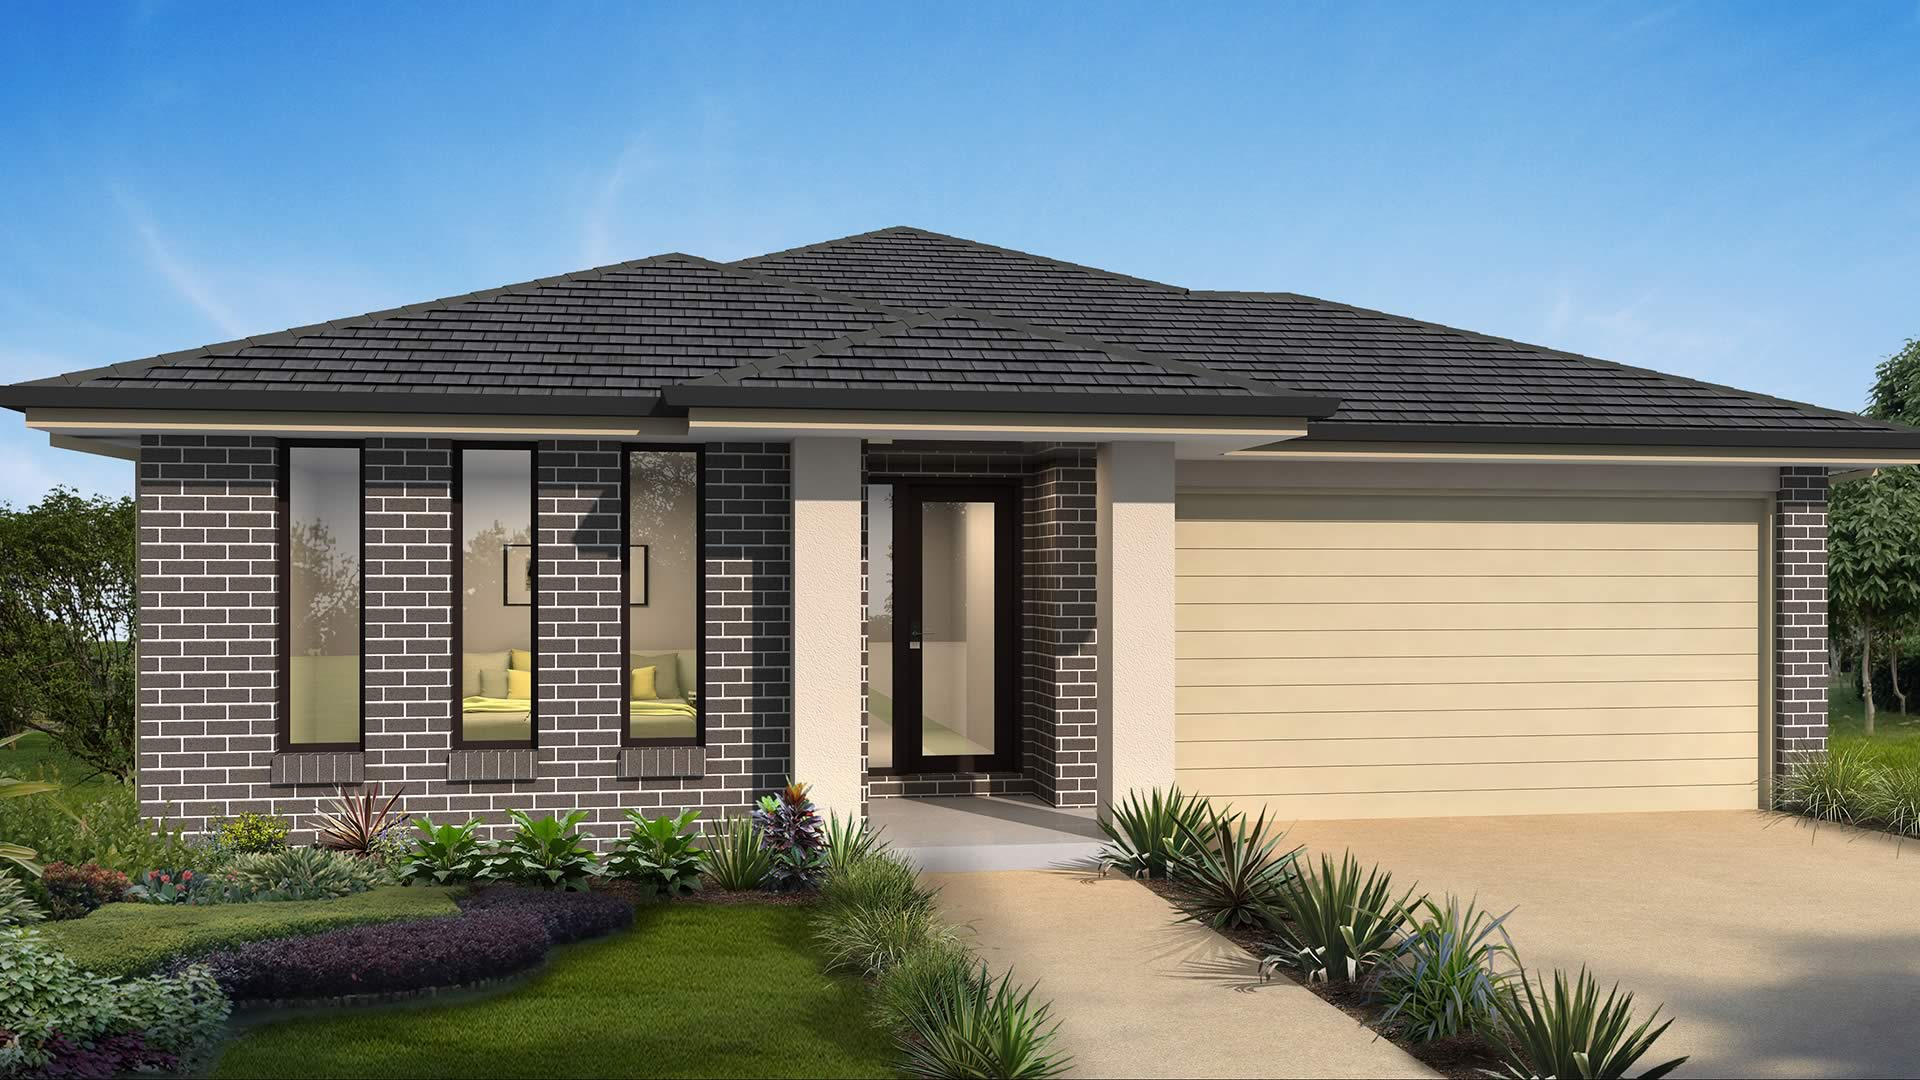 Accent Single Storey Riviera Brick Pier